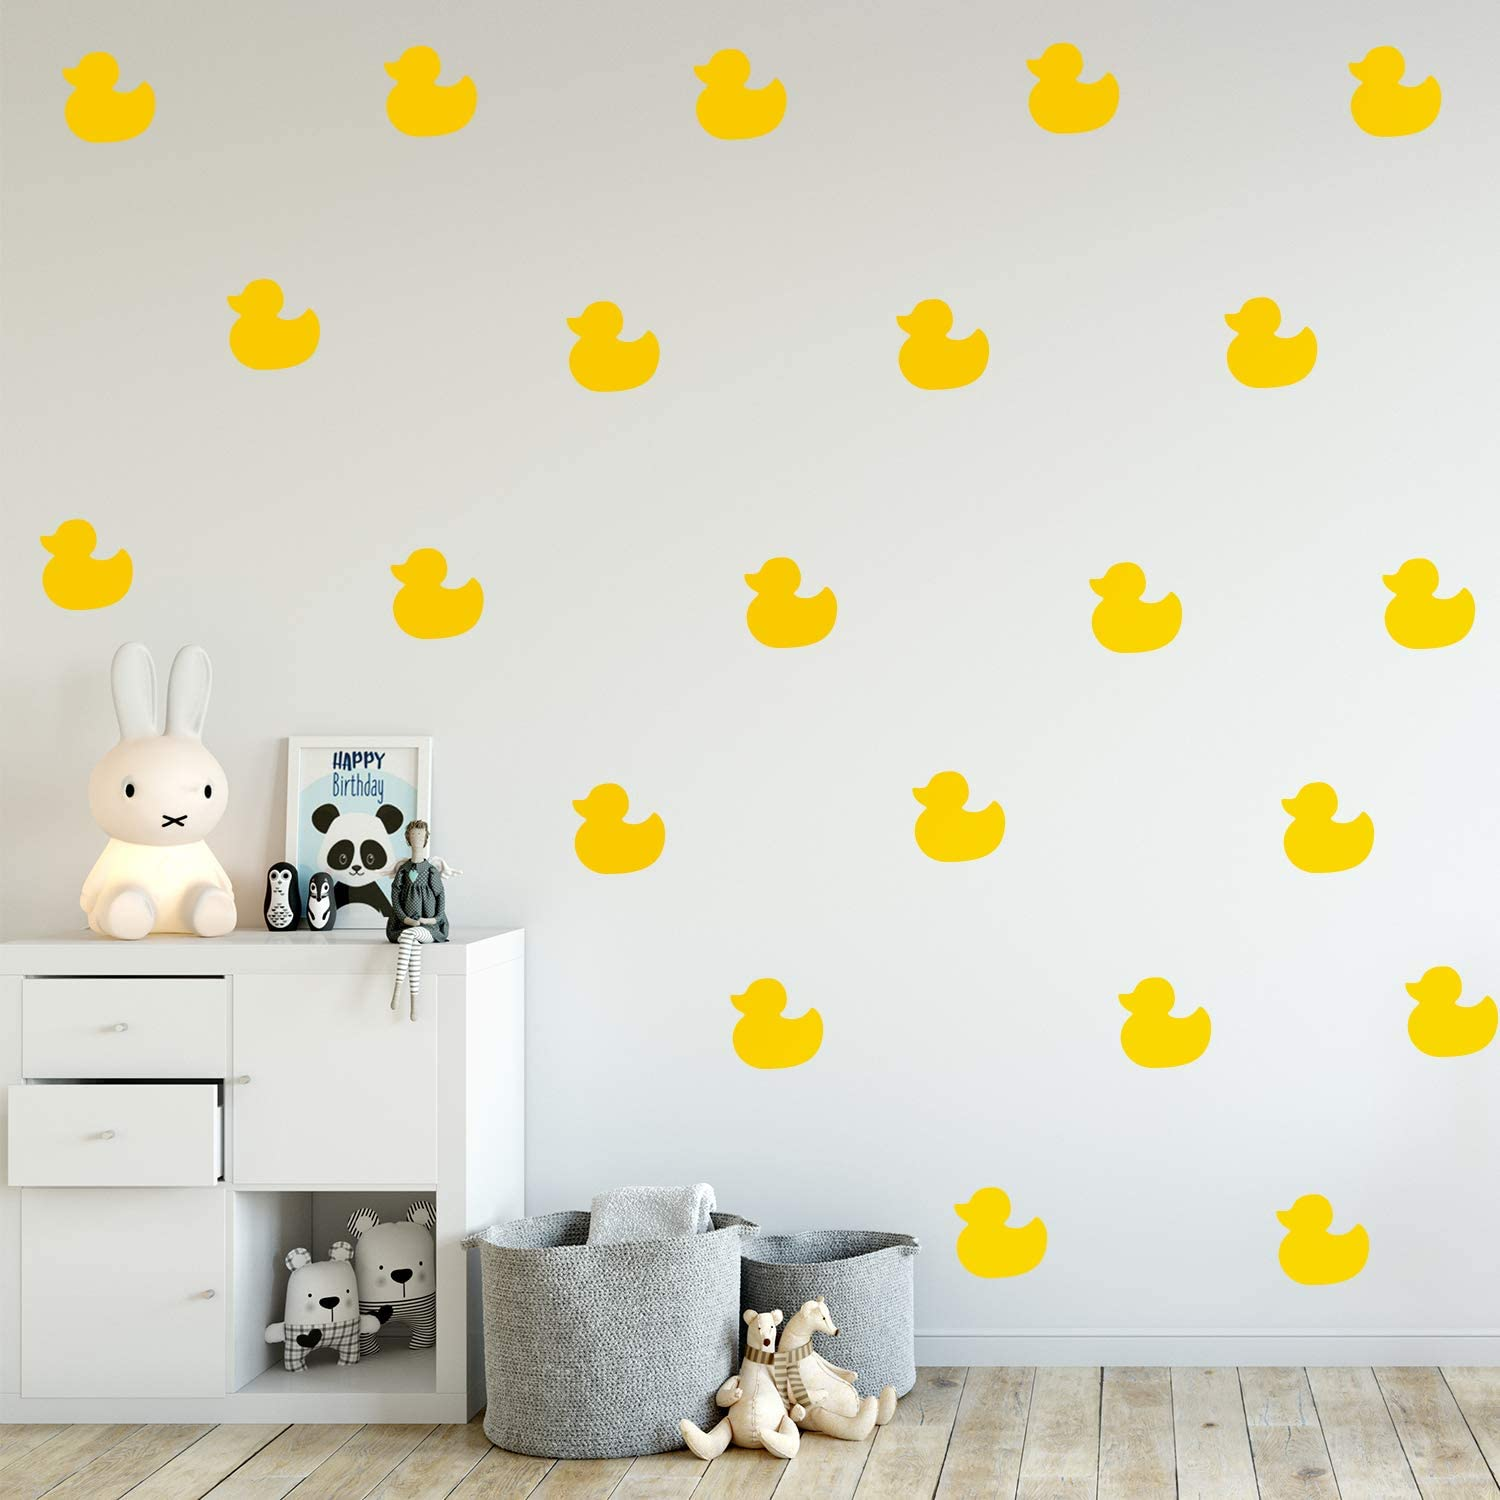 "Set of 12 Vinyl Wall Art Decal - Little Ducks - 5"" x 5"" Each - Cute Fun Home Indoor Outdoor Bedroom Living Room Apartment Nursery - Shower Bath Time Nursery Playroom Decor (Yellow)"